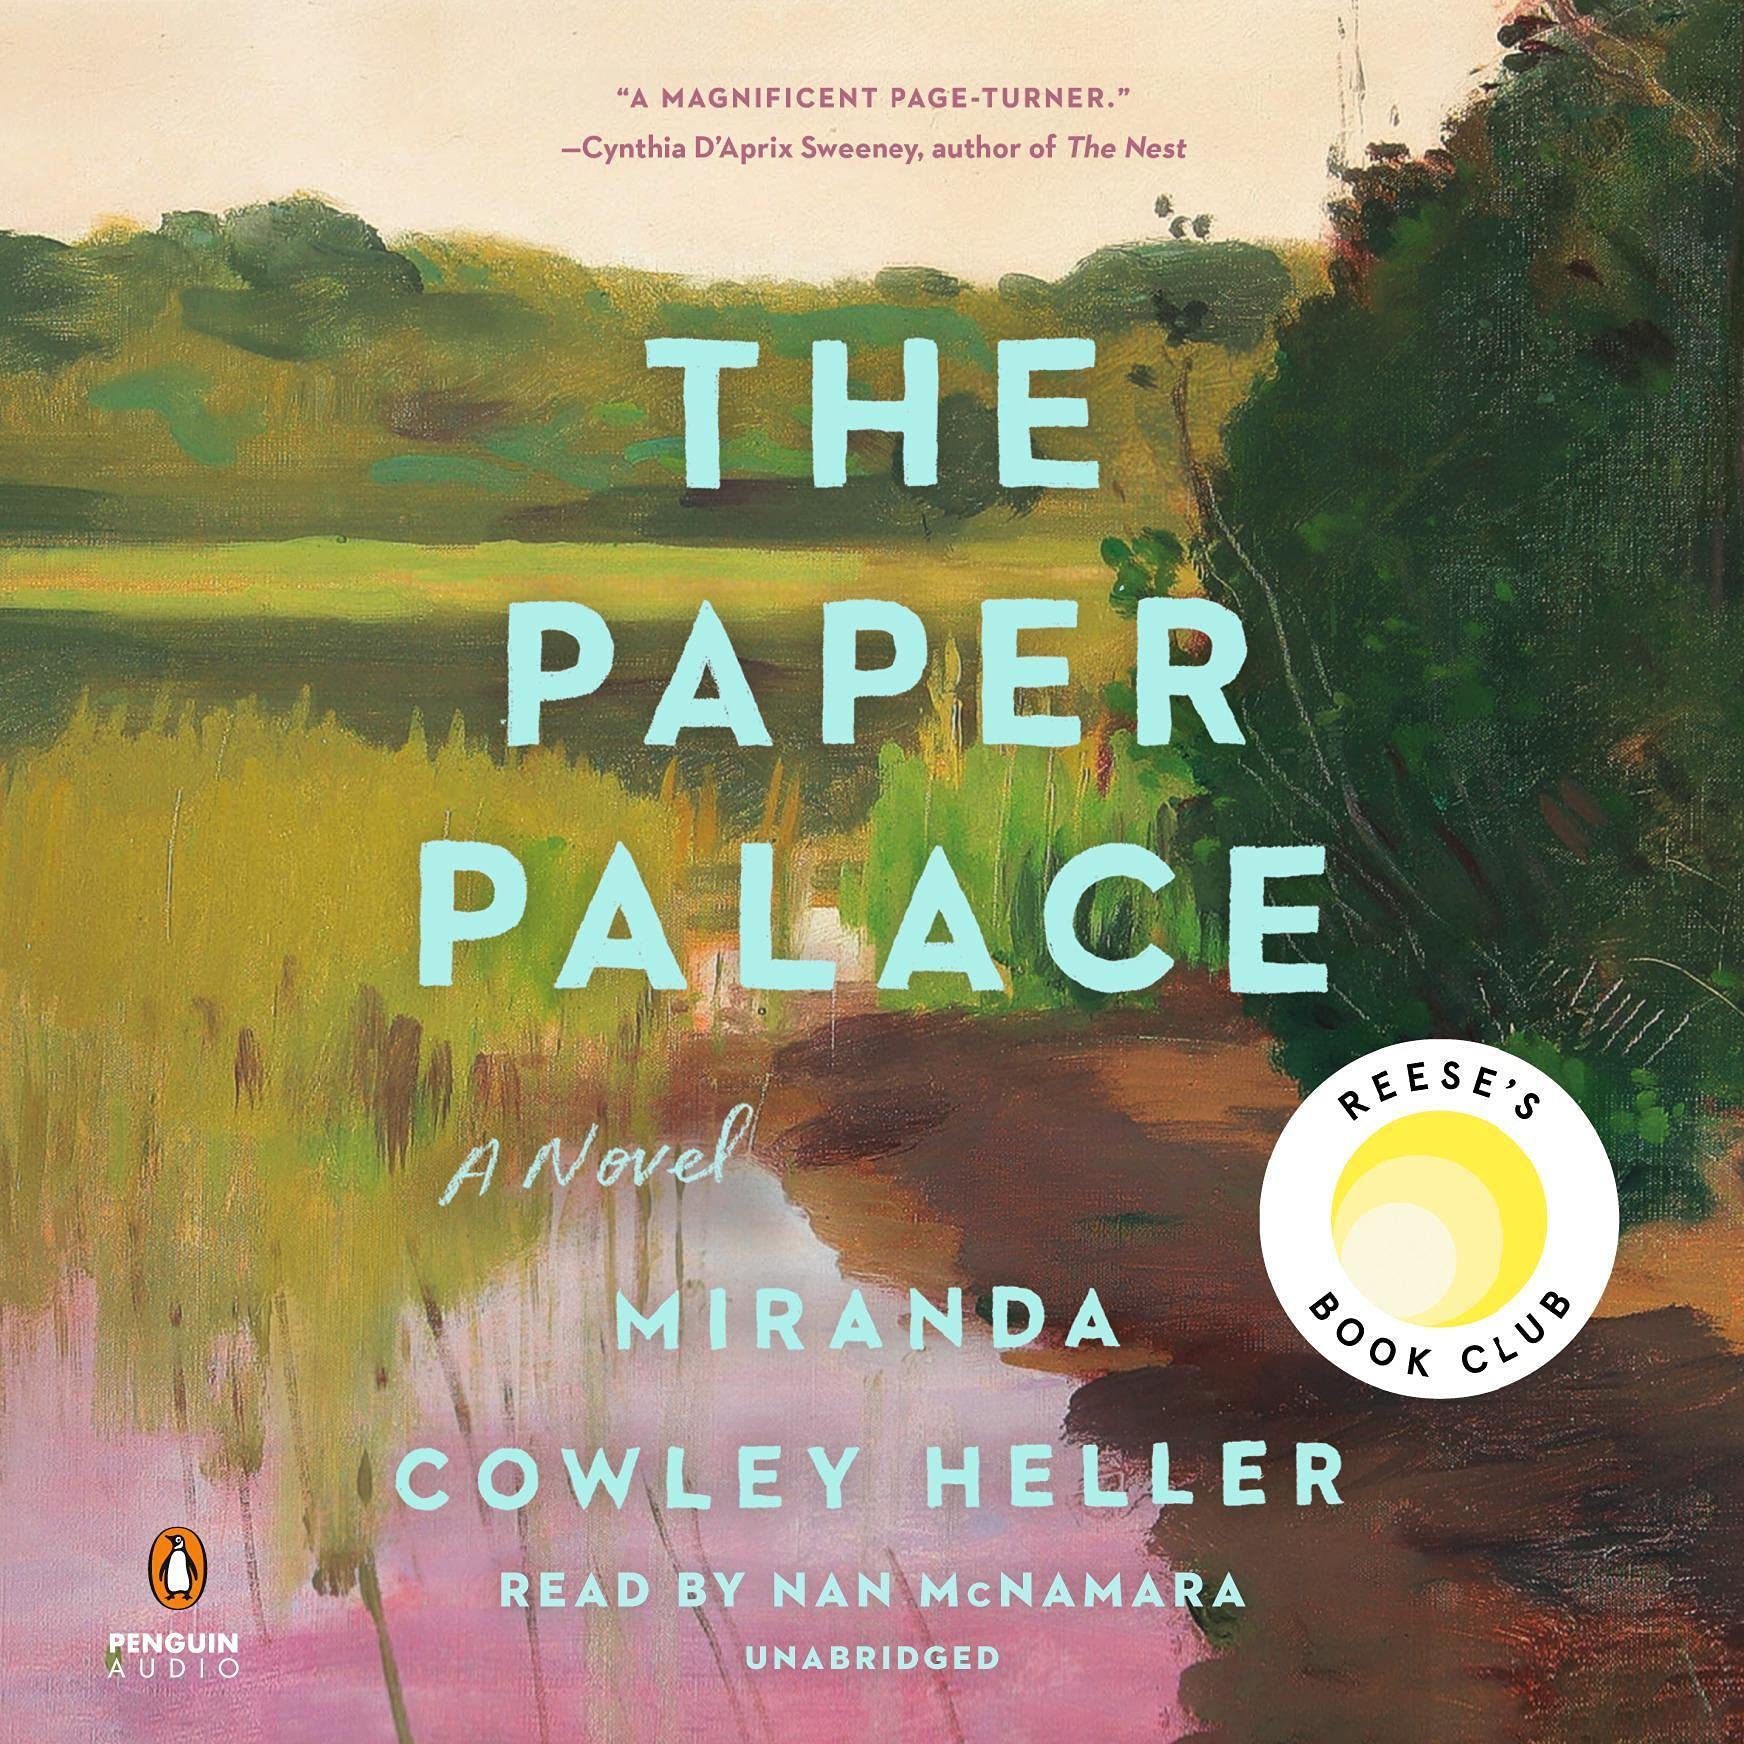 Cover image of The Paper Palace by Miranda Cowley Heller